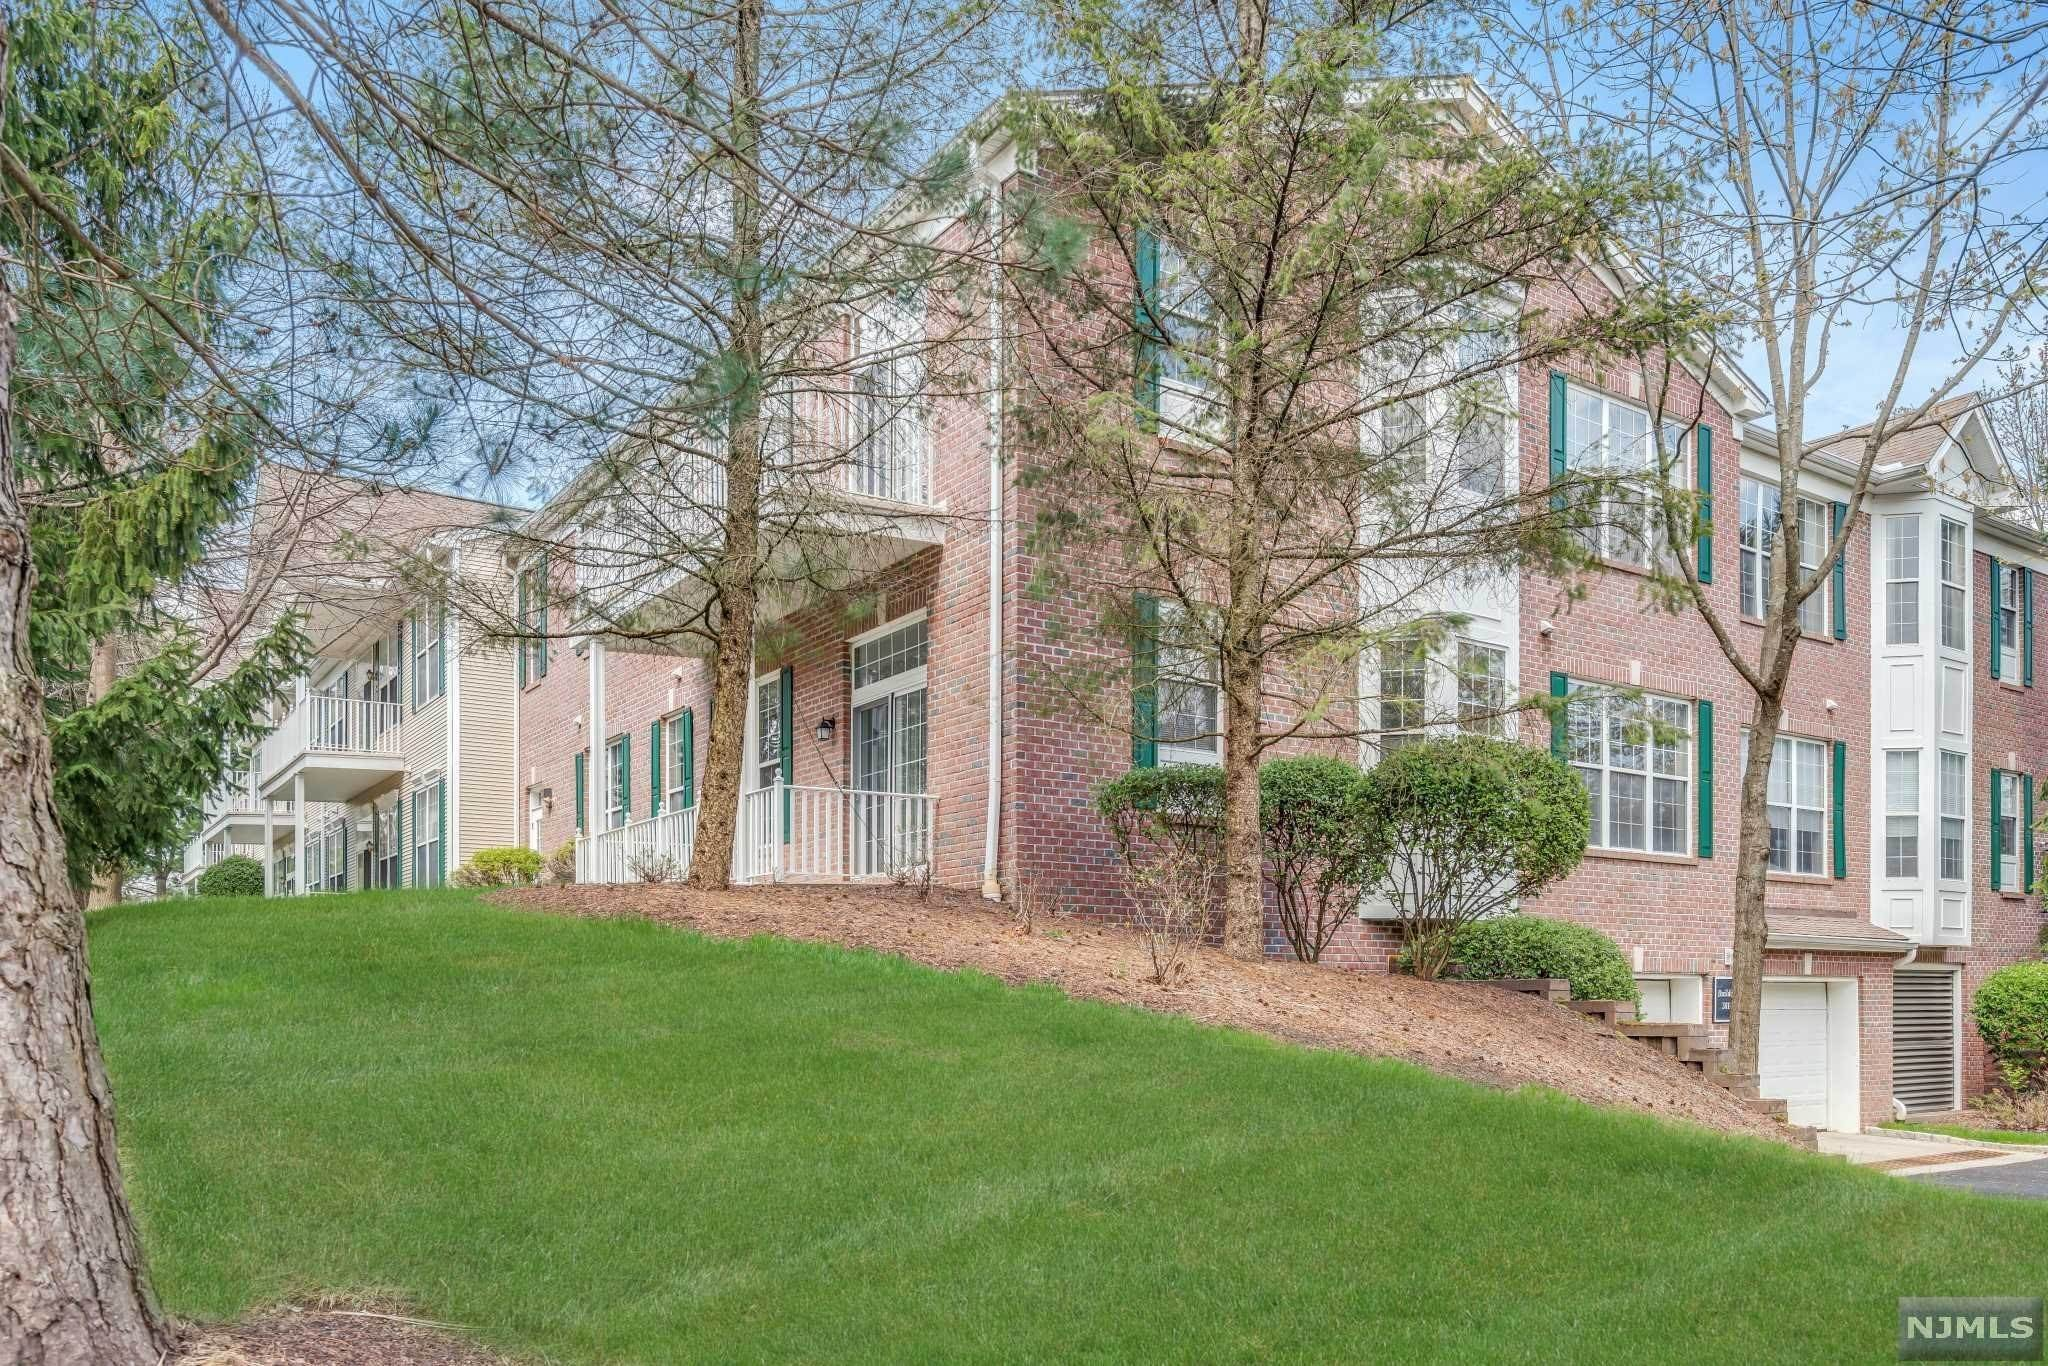 Condominium for Sale at 308 Four Seasons Drive Wayne, New Jersey, 07470 United States